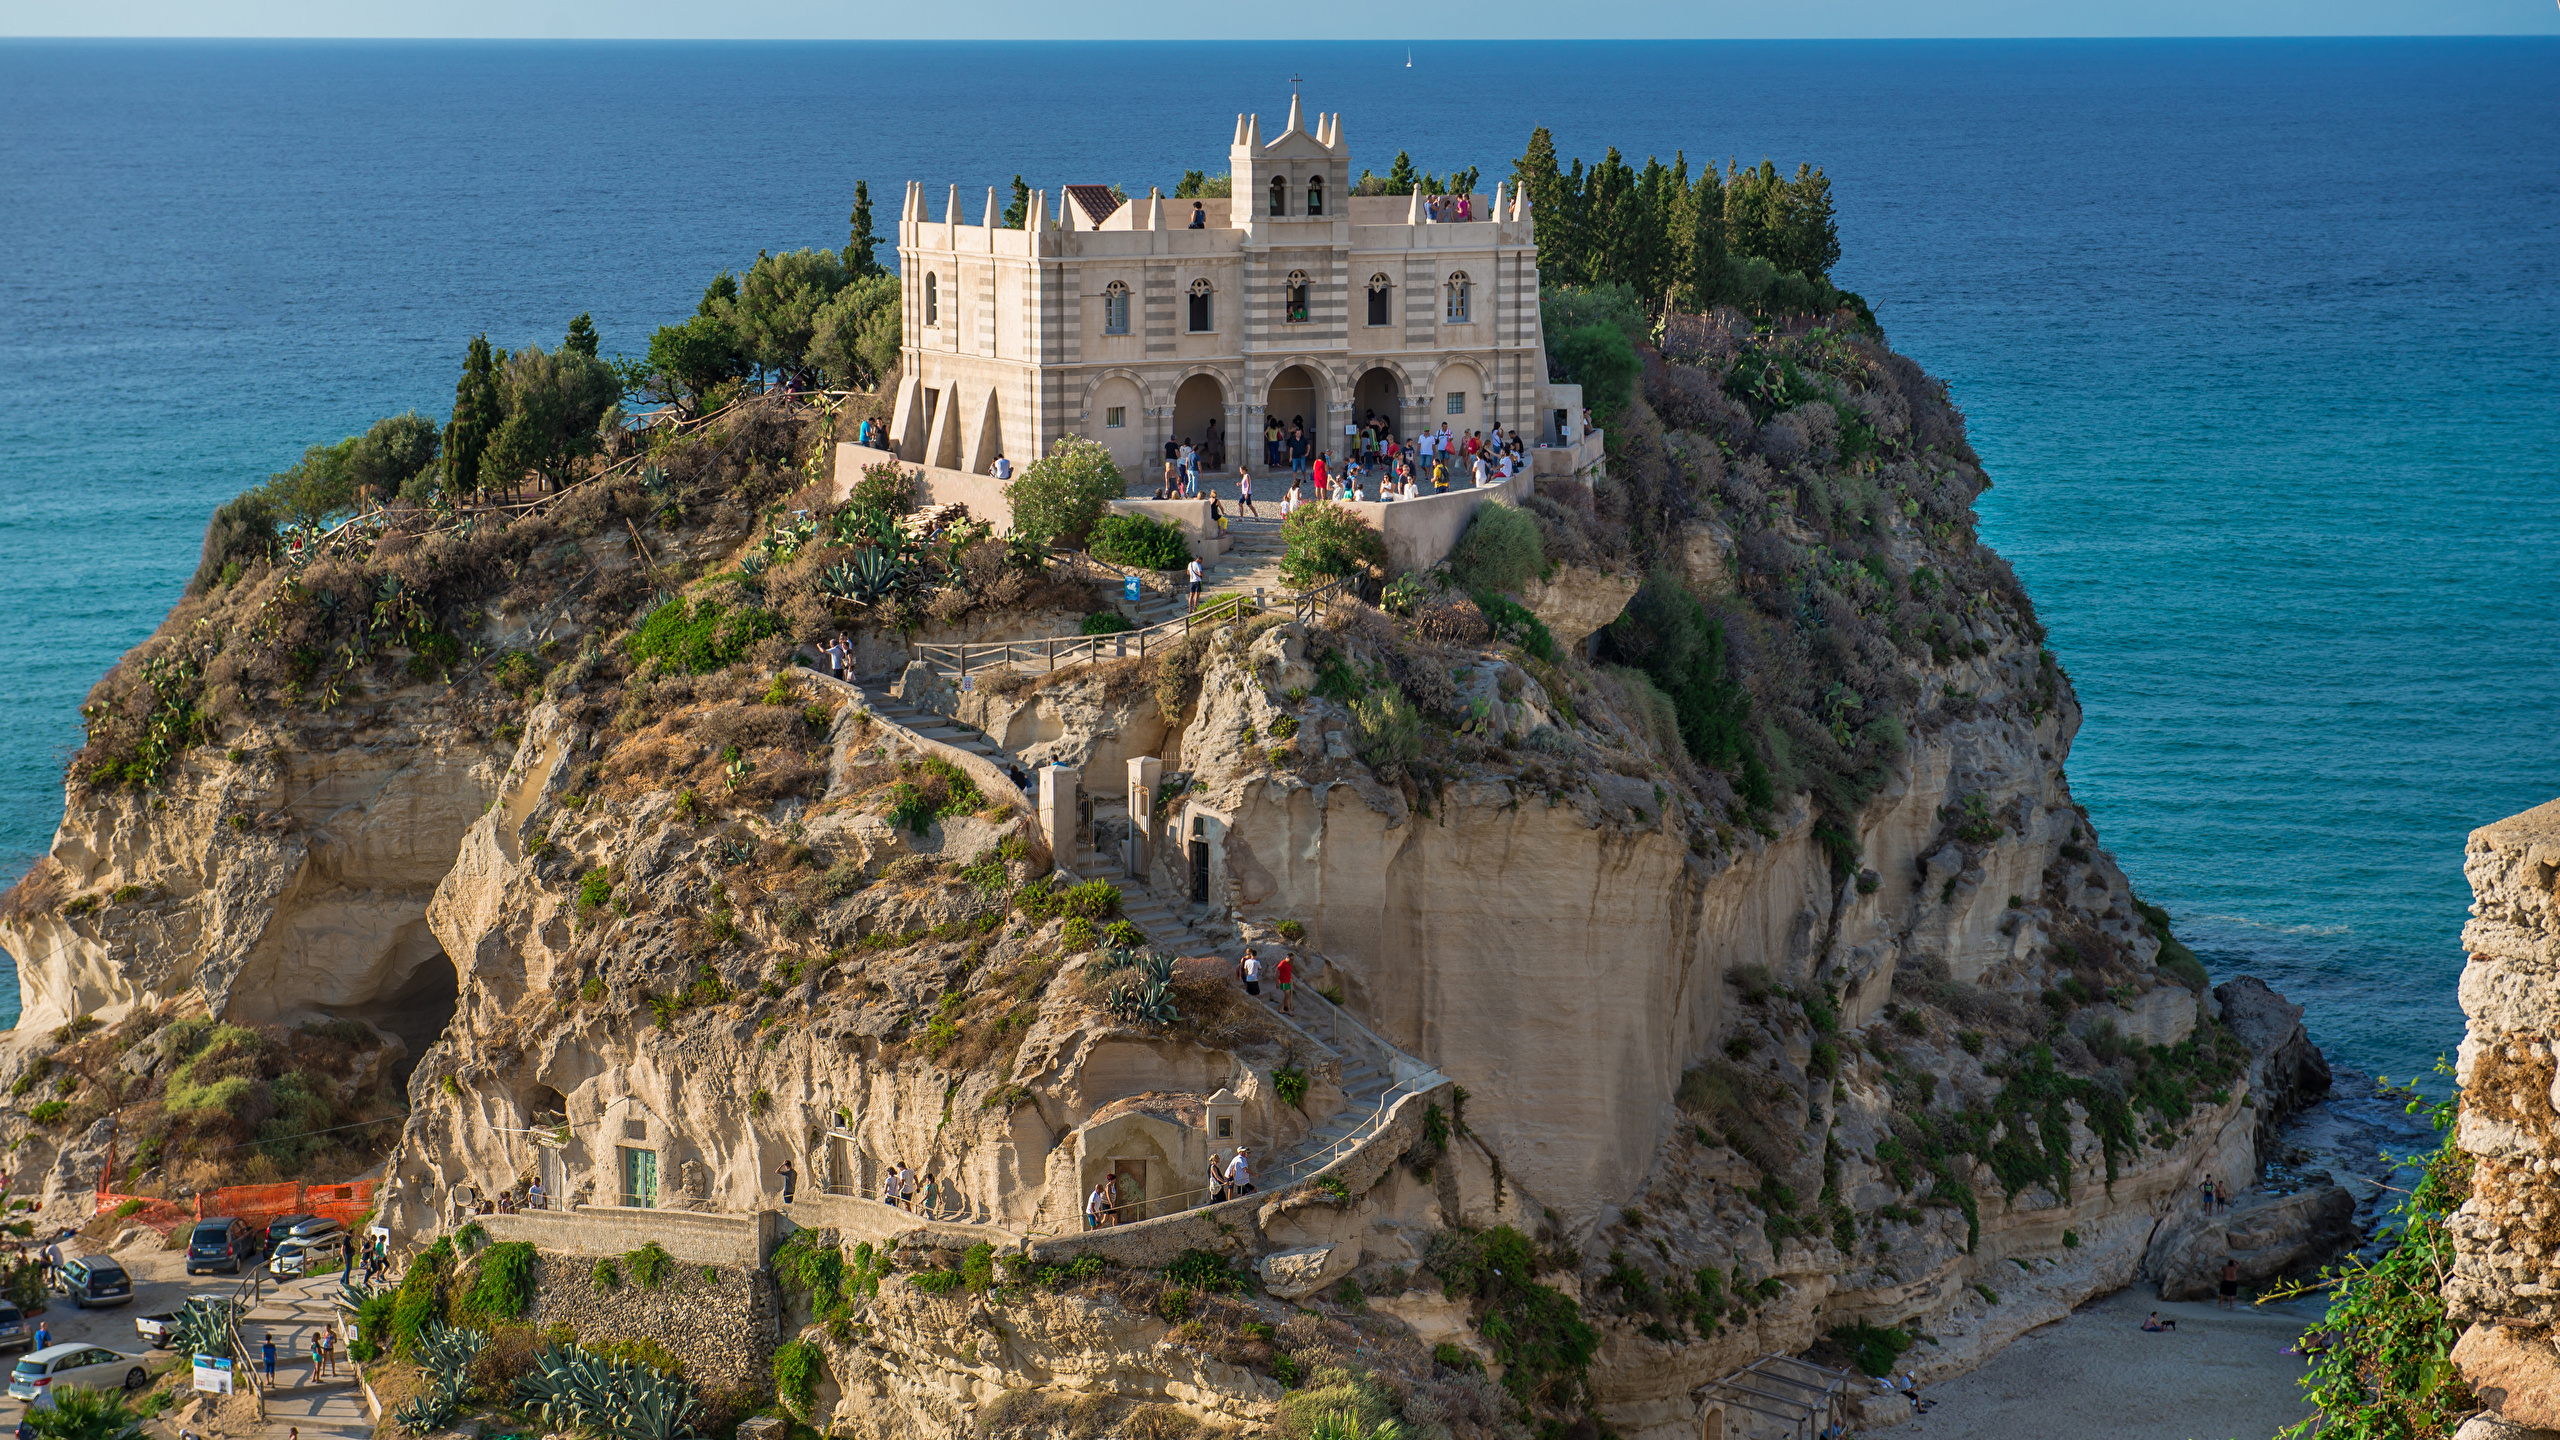 Photos Italy Tropea Cliff Stairs Cities Building 2560x1440 2560x1440